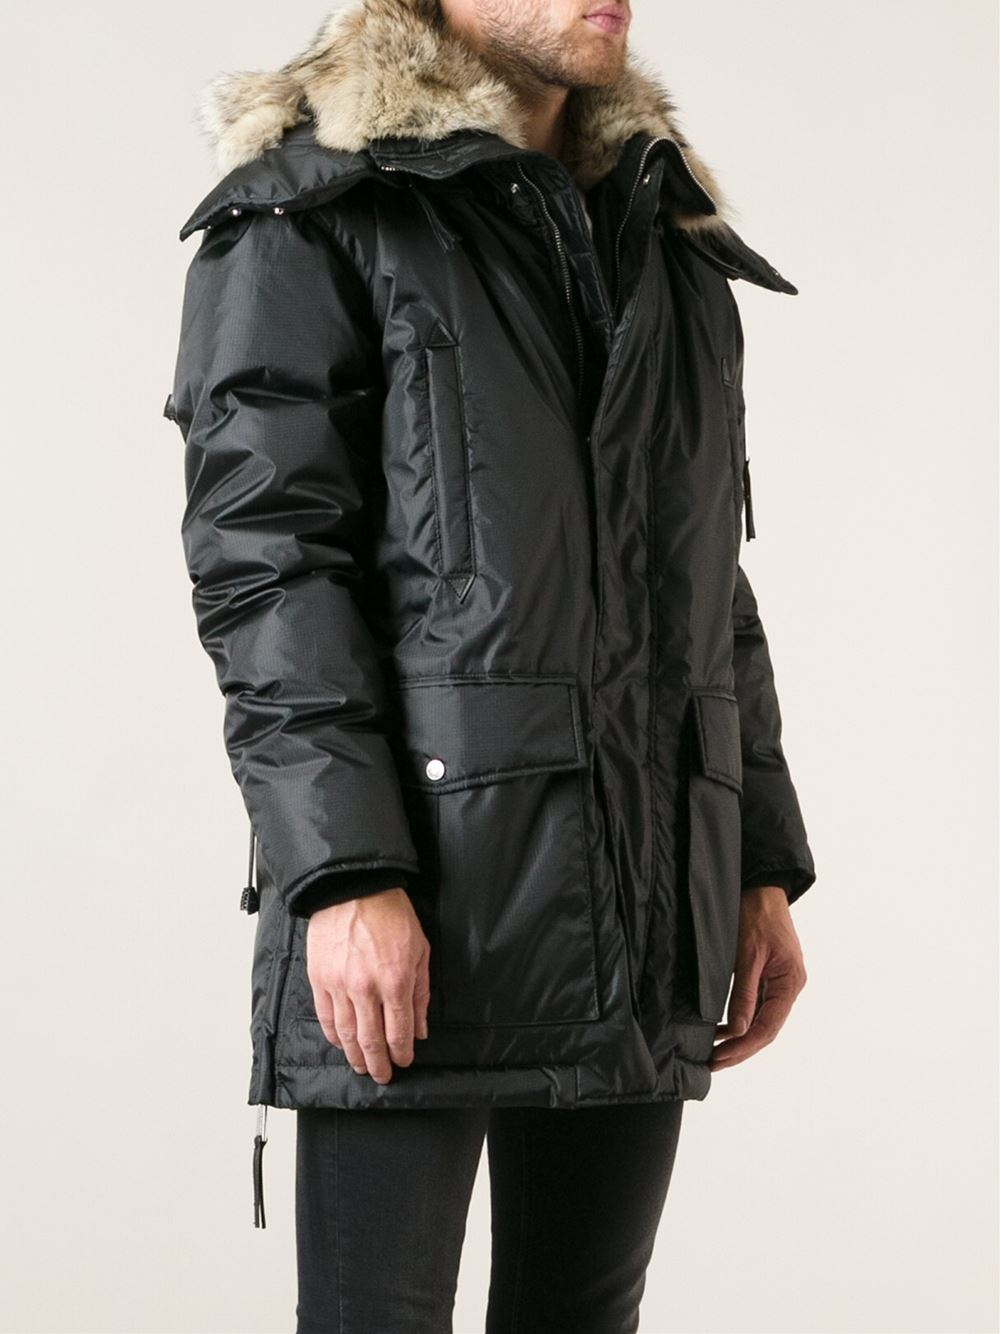 hooded oversized parka coat Dsquared2 Buy Cheap Reliable Low Price Online IDDUkbN